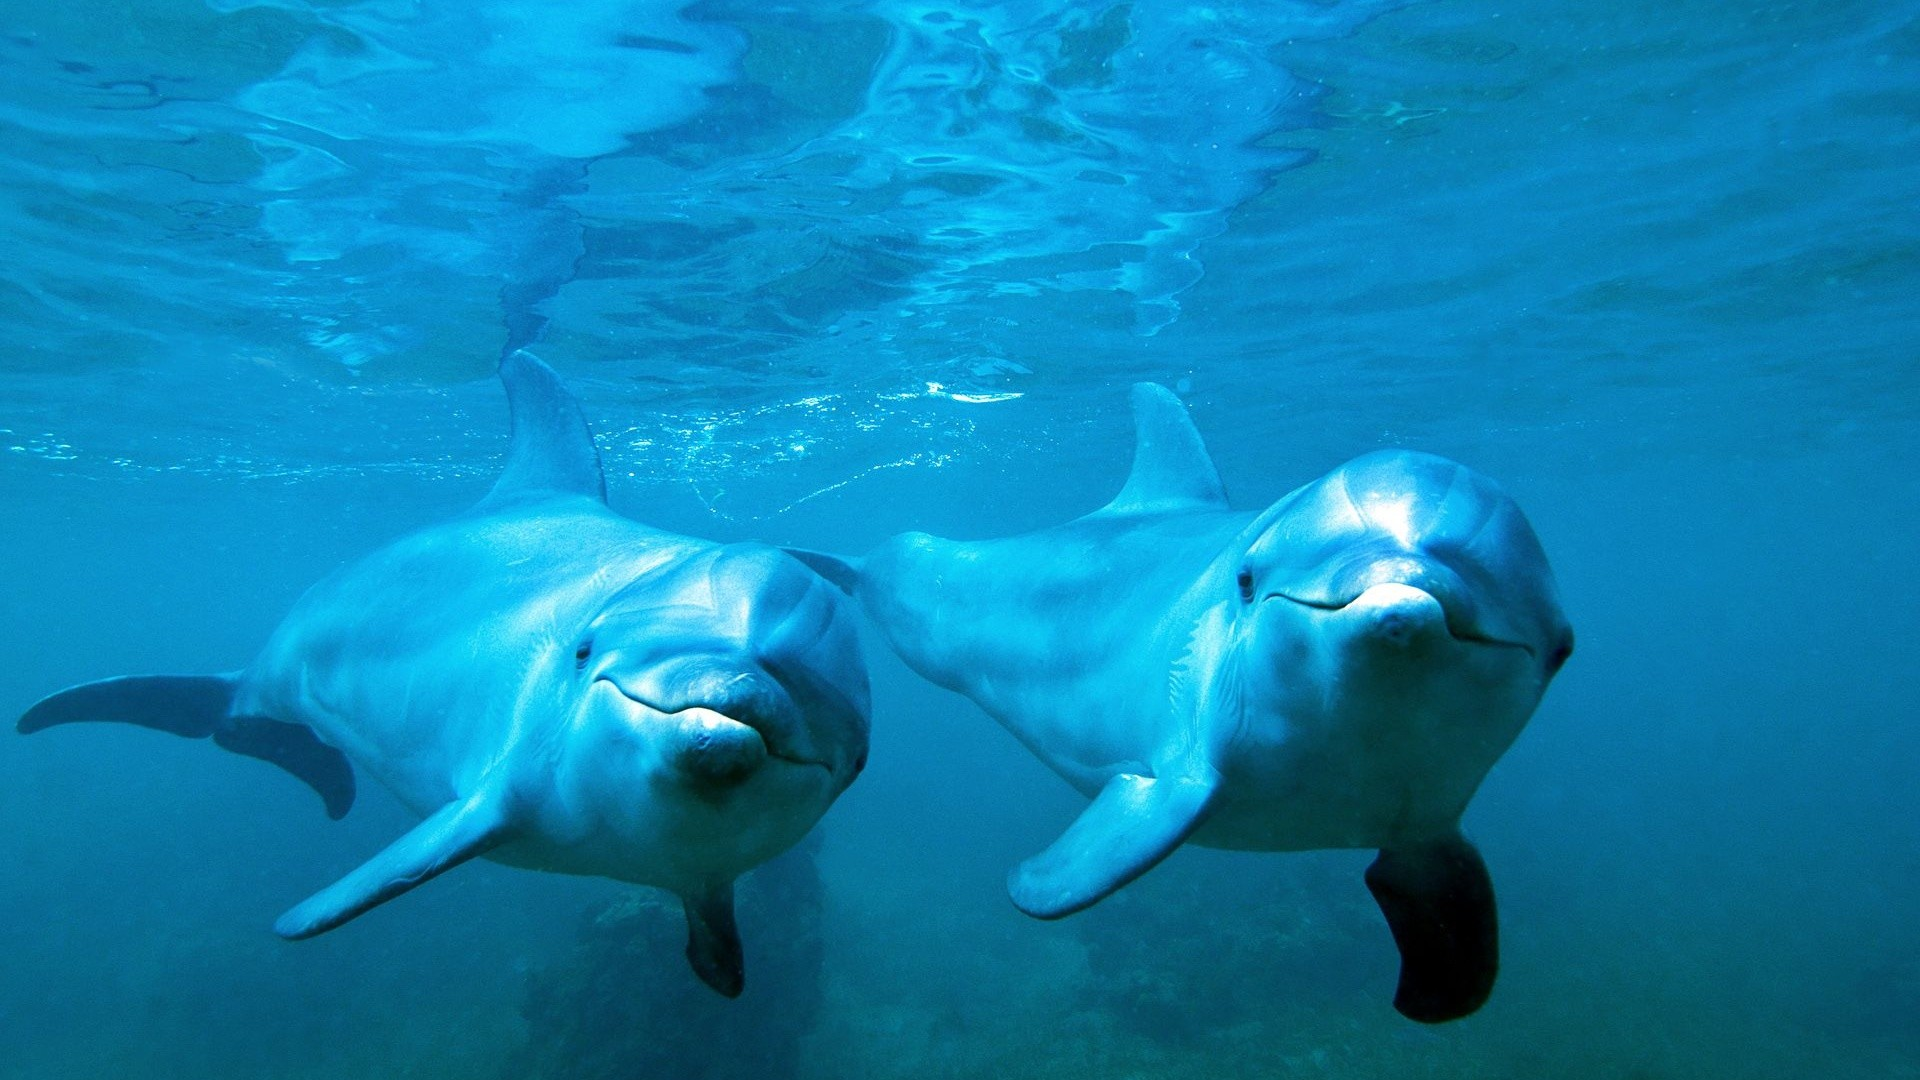 1920x1080 dolphin wallpapers 18 hd dolphin desktop wallpapers for free download dolphin